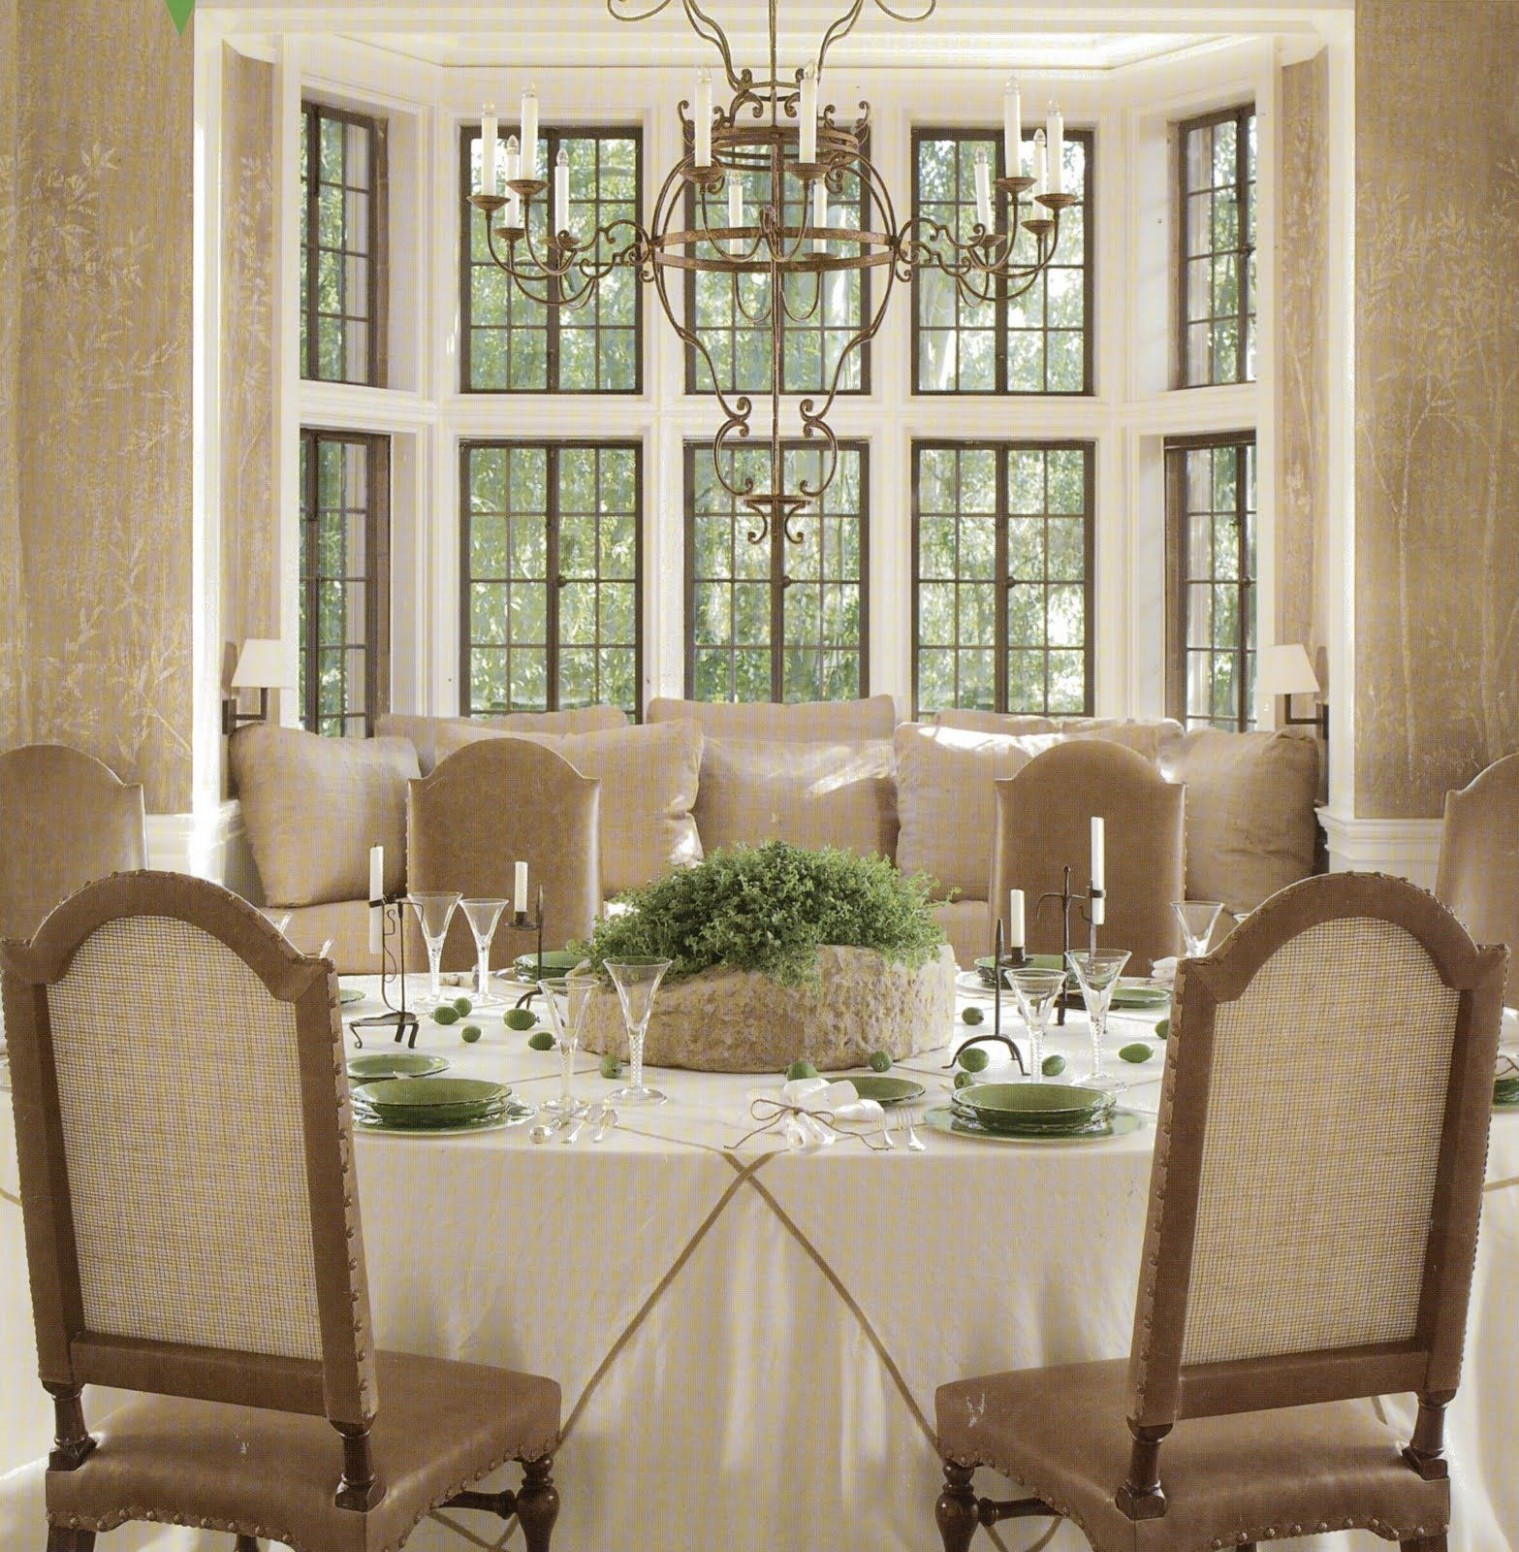 PERFECTLY SYMMETRICAL  Dining room windows, Dining room decor  - Window Ideas For Dining Room